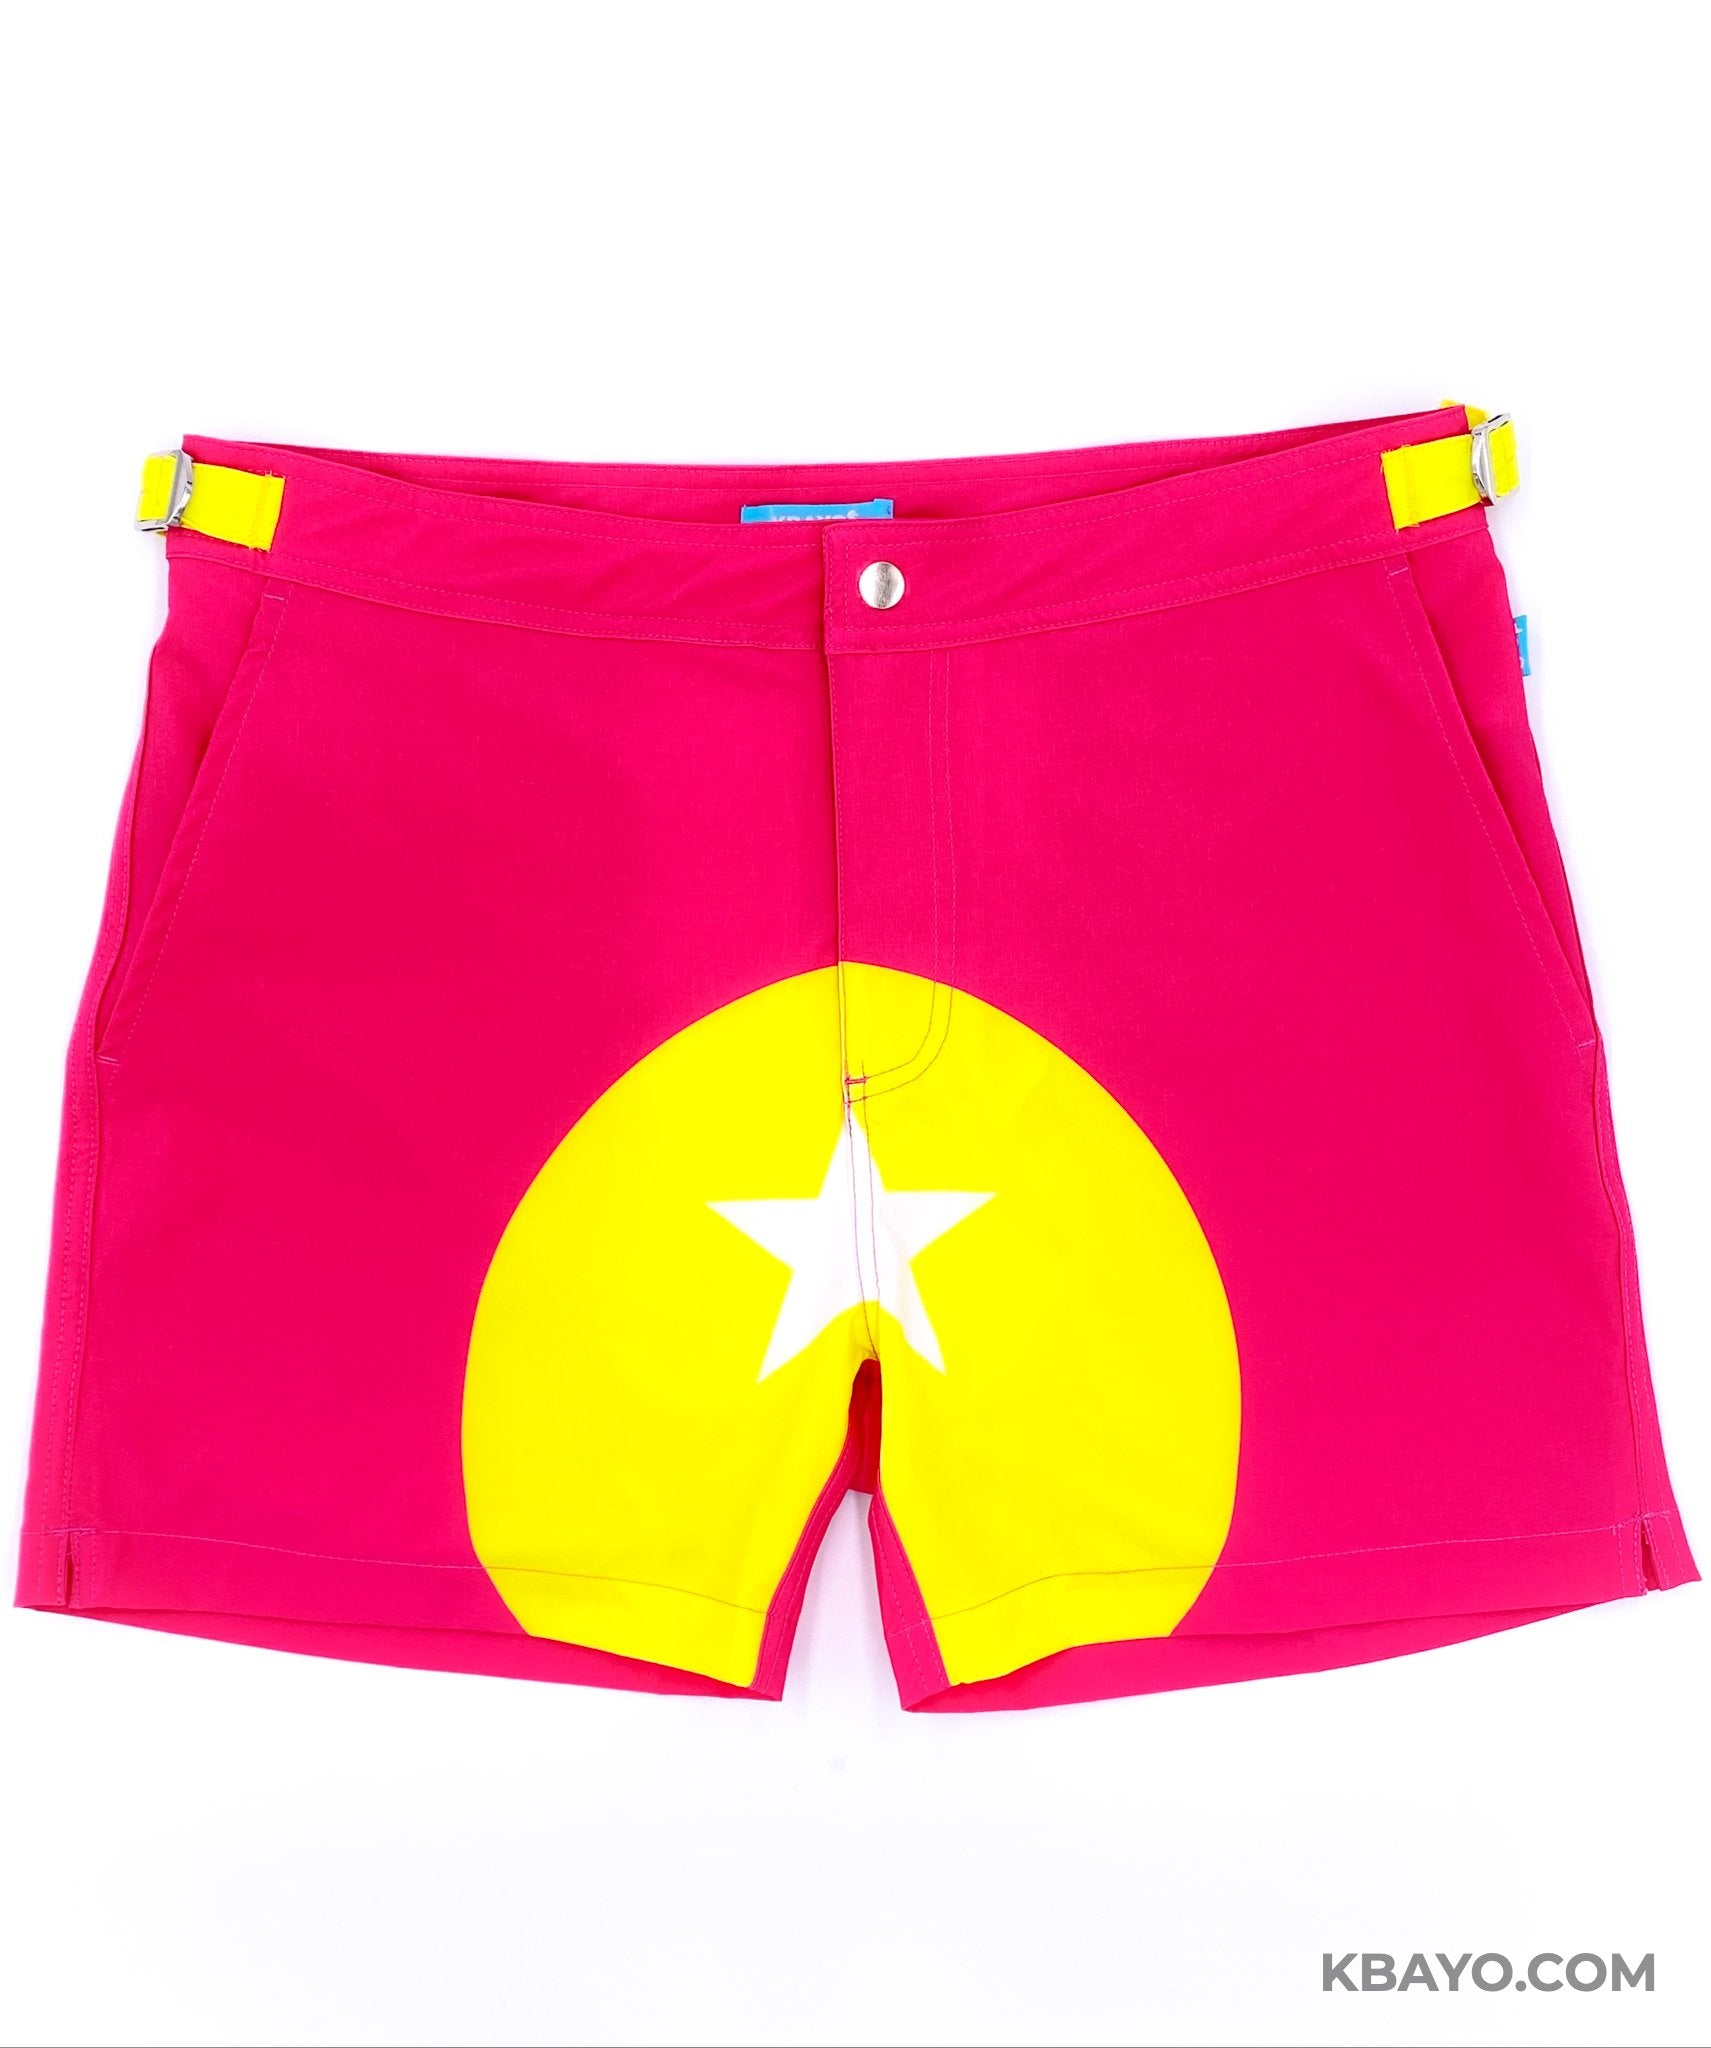 The Little Havana Shorts